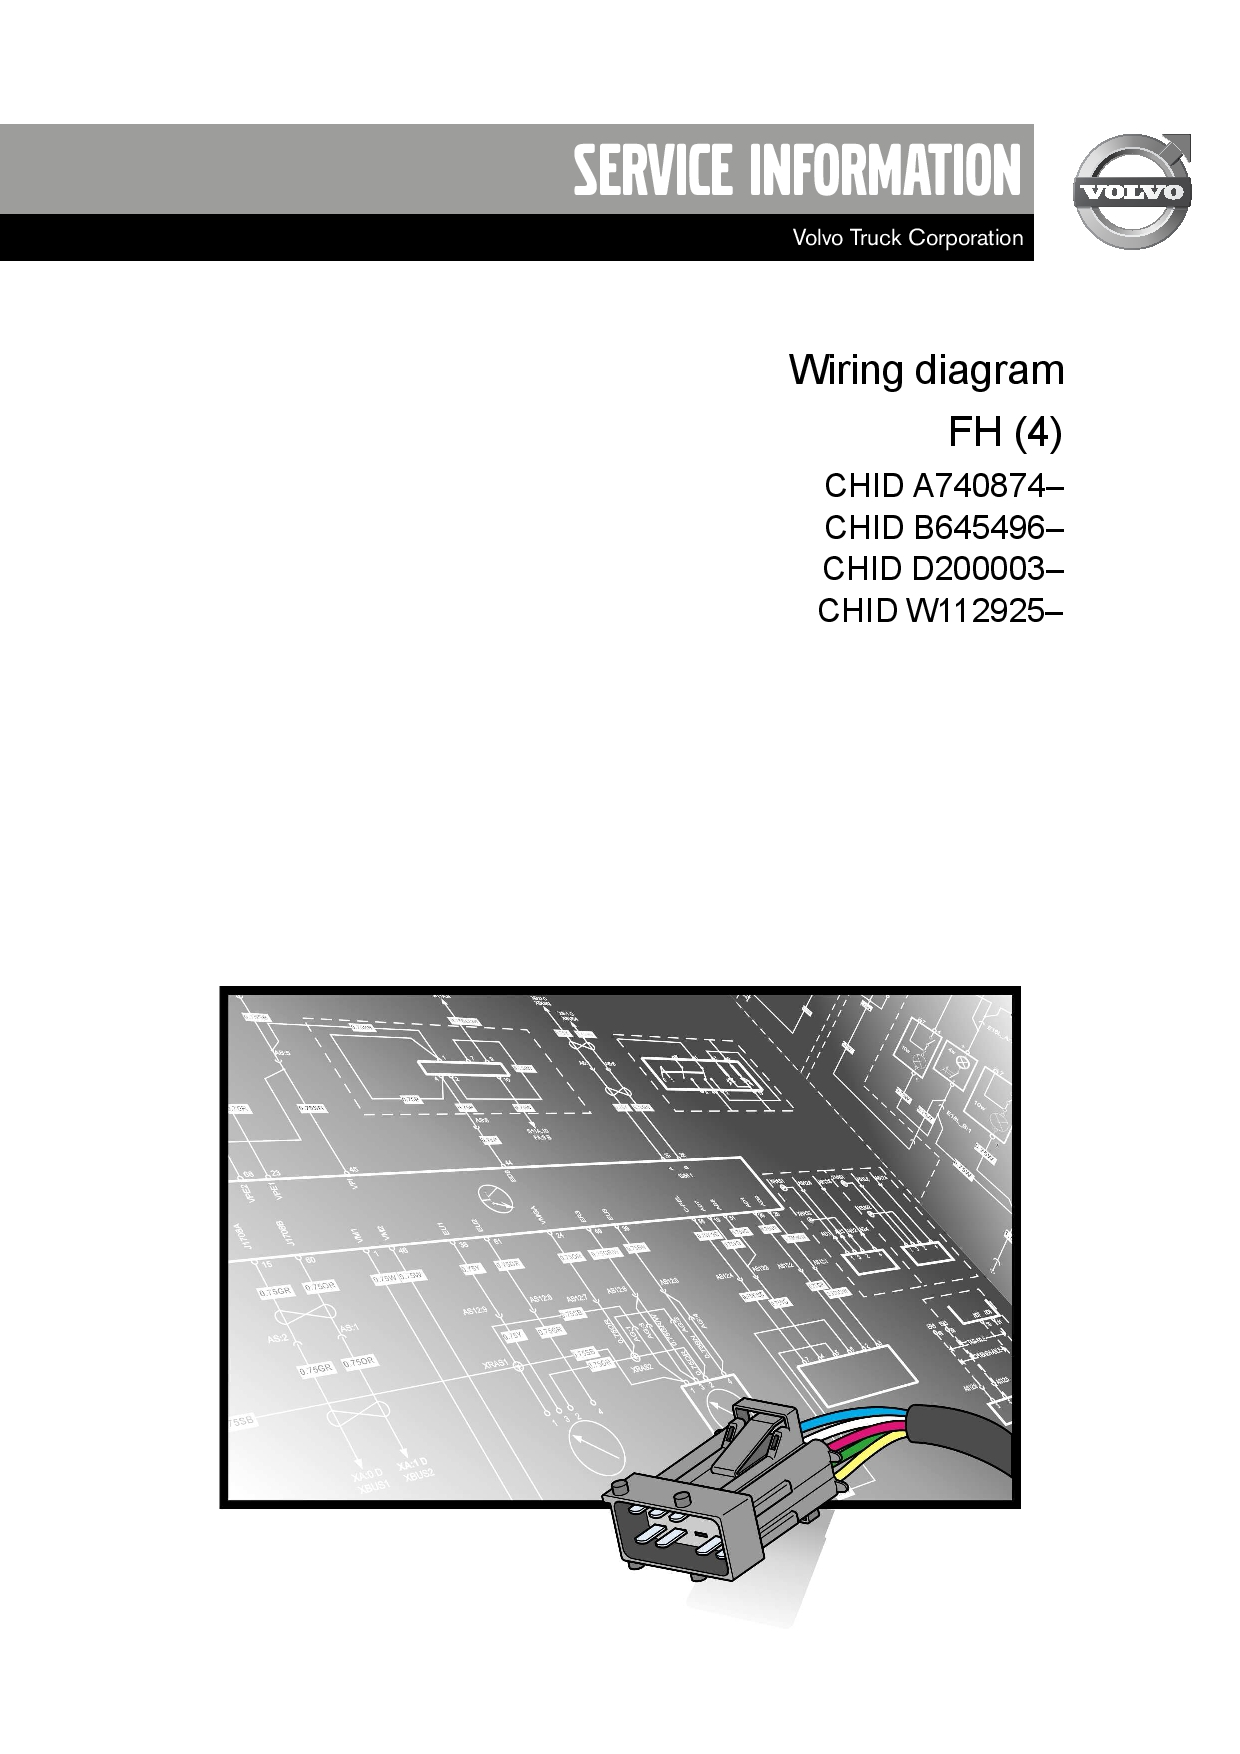 Volvo Truck Fh 4  April2014 Wiring Diagram Pdf Download - Service Manual